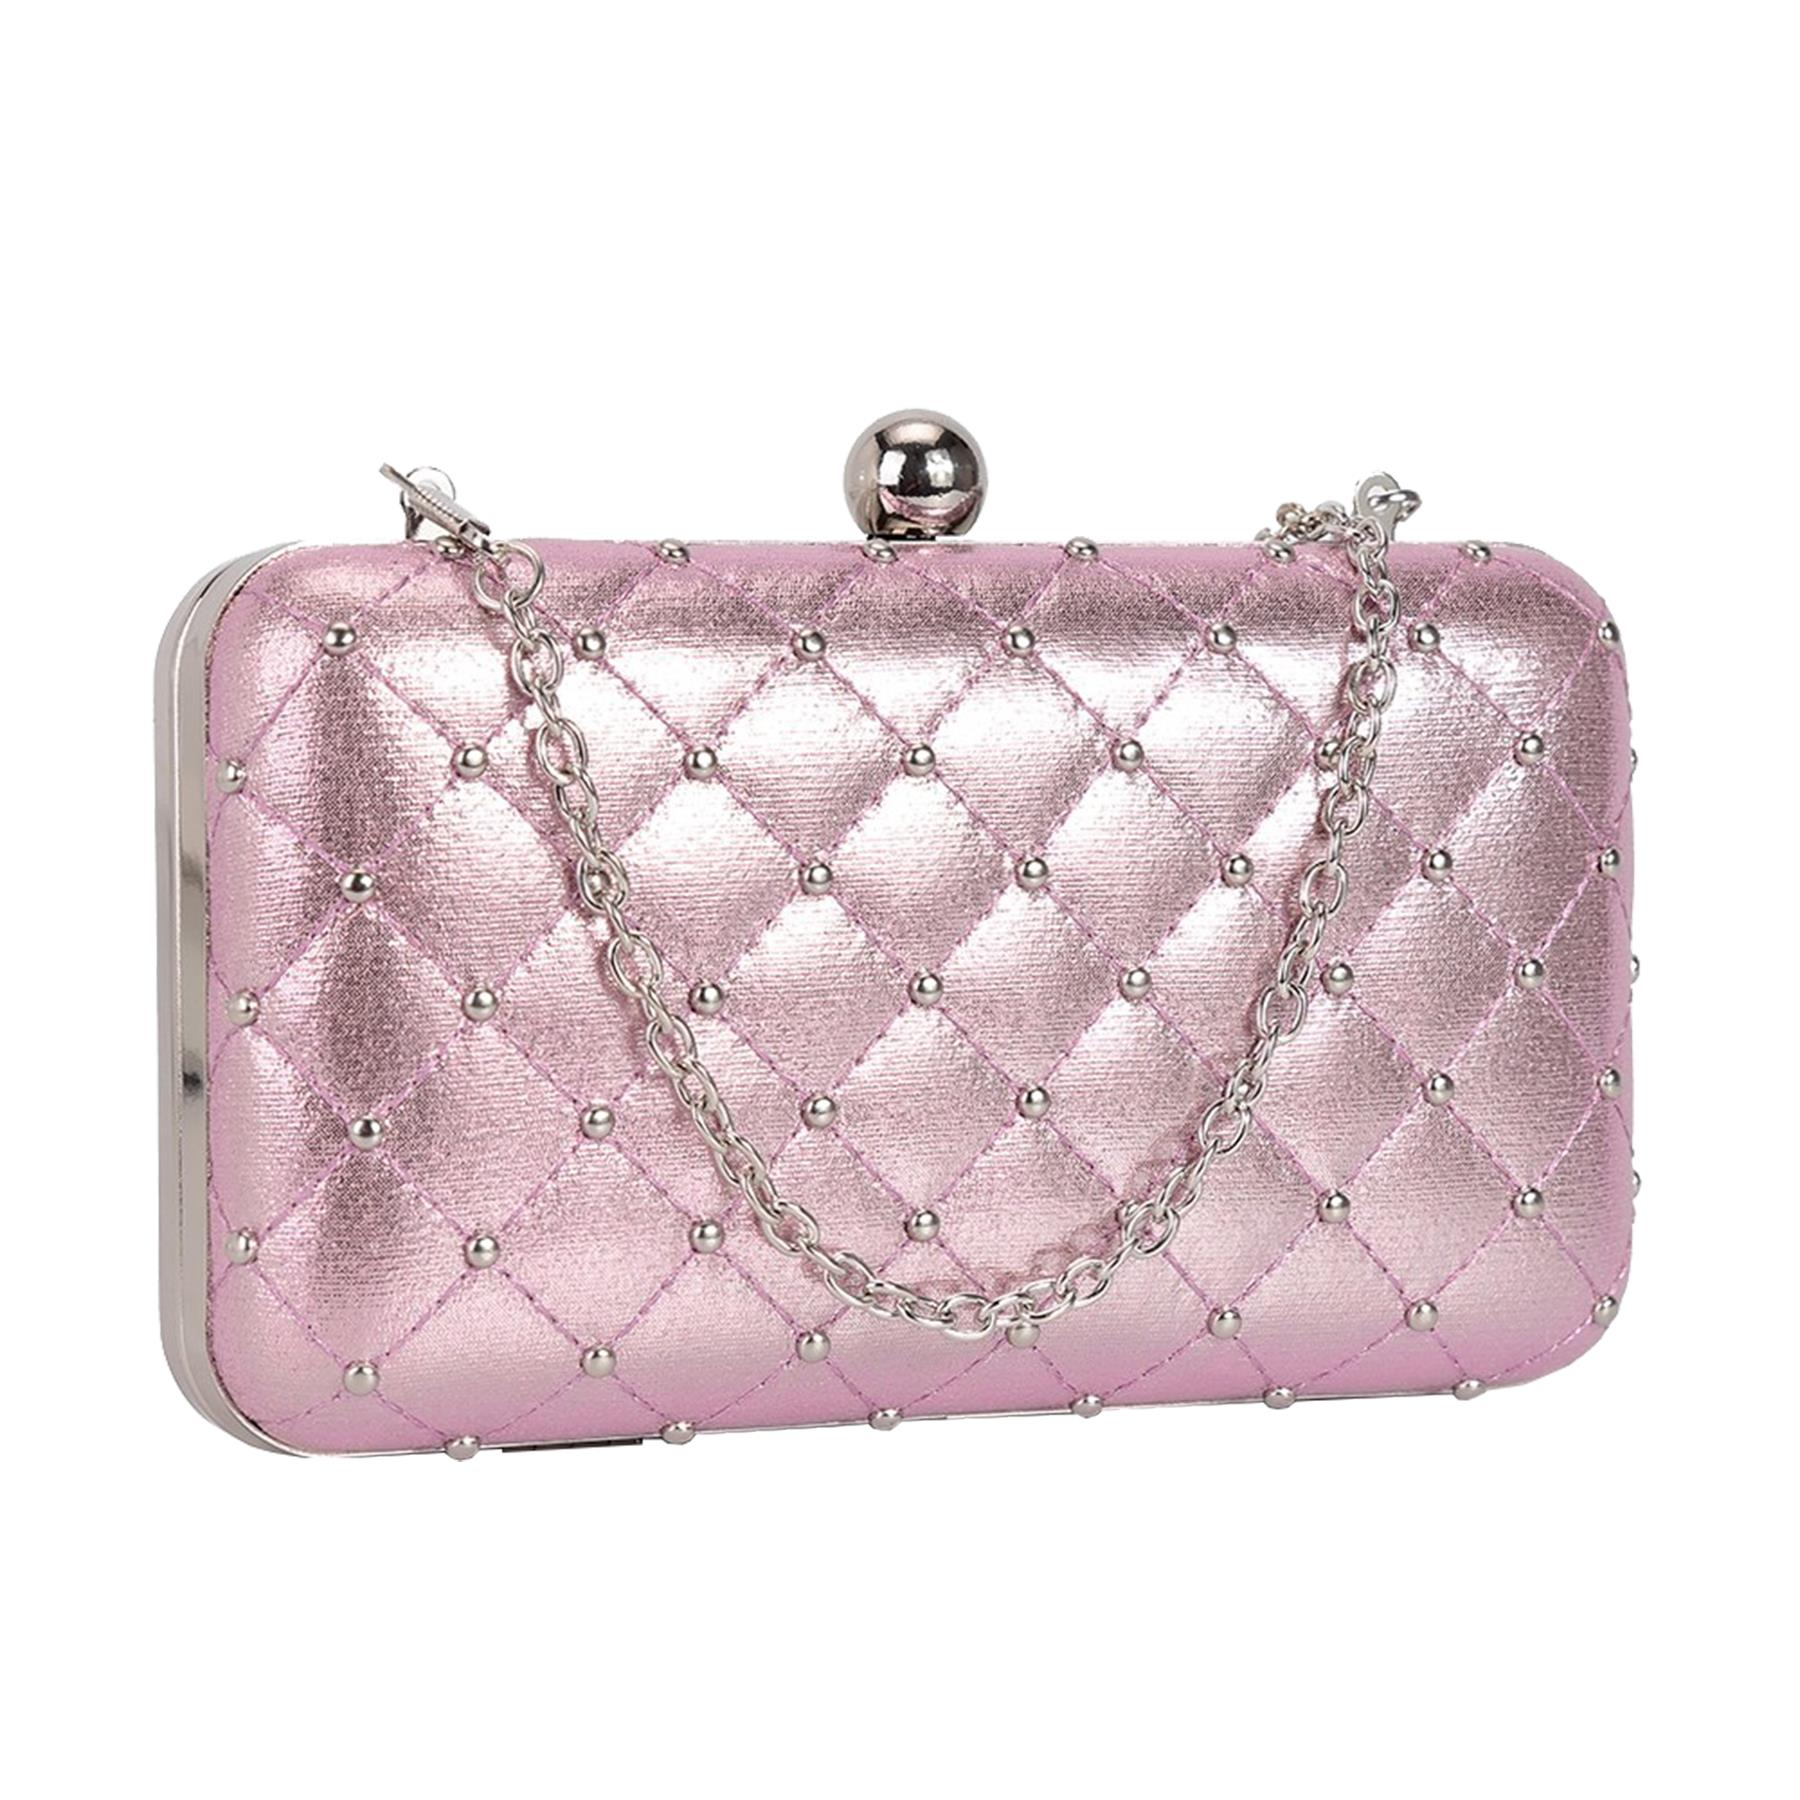 New-Women-s-Quilted-Studded-Faux-Leather-Party-Bridal-Prom-Box-Clutch-Bag thumbnail 9